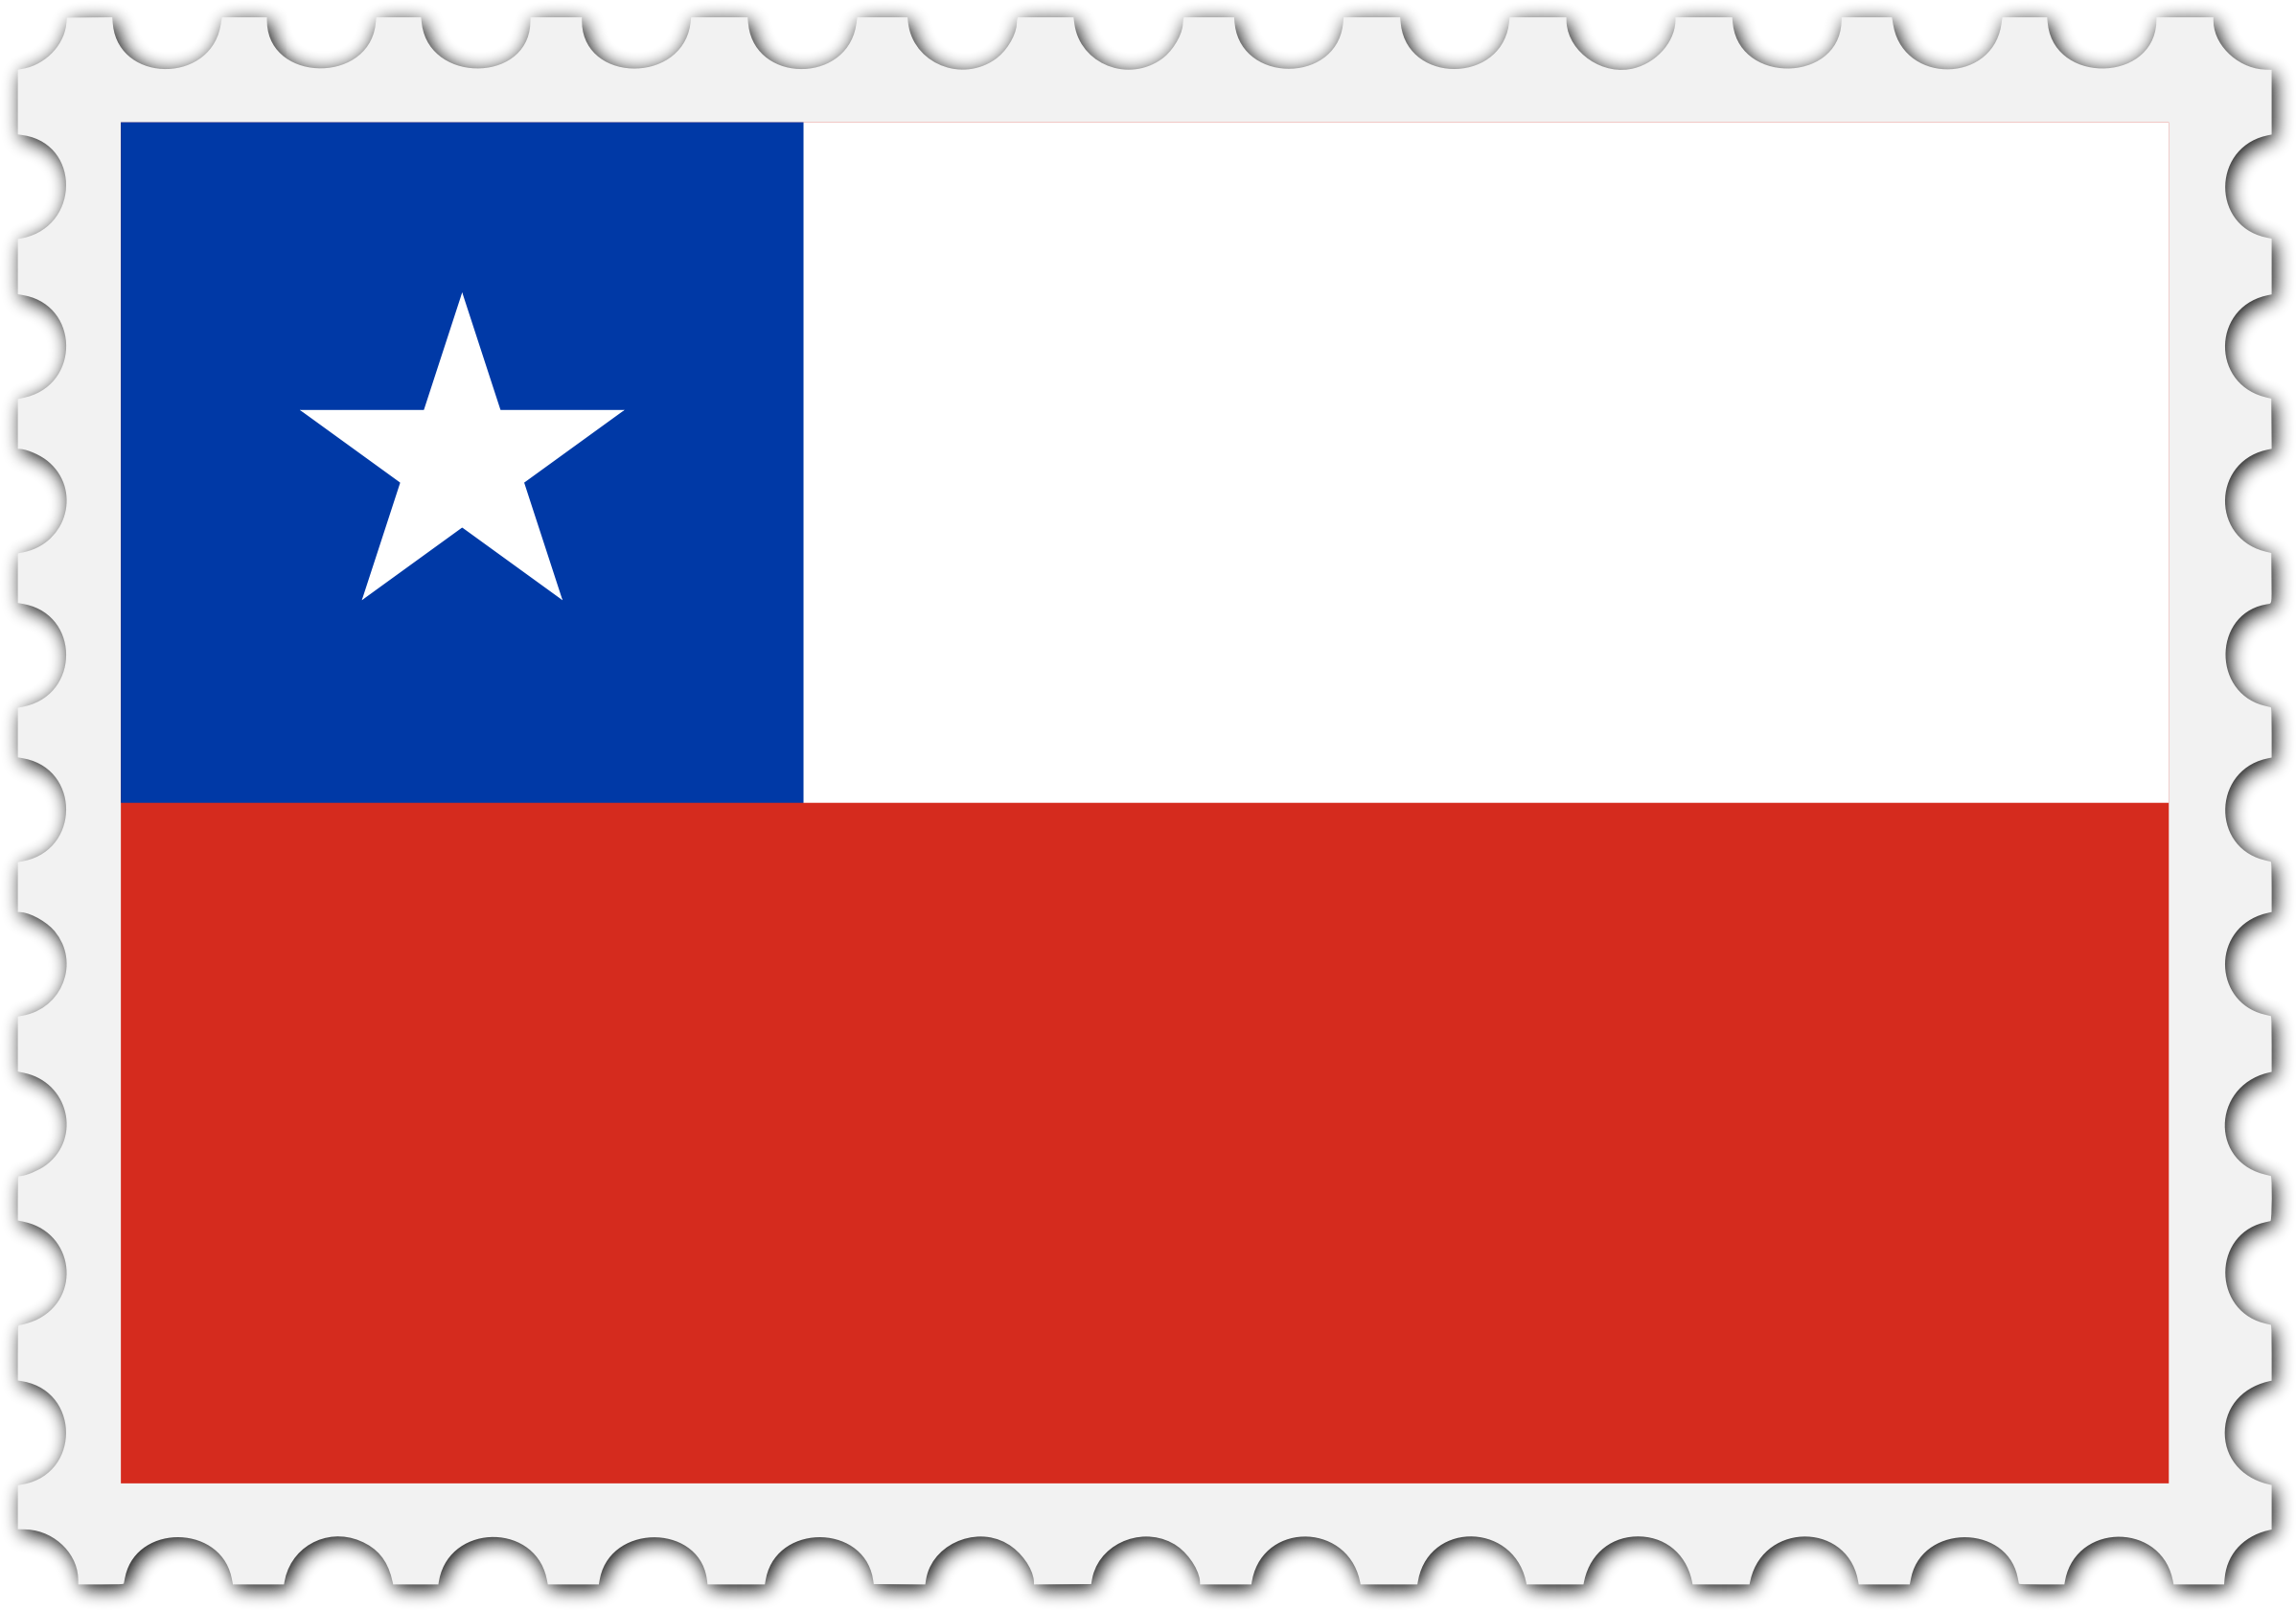 Chile flag stamp by Firkin